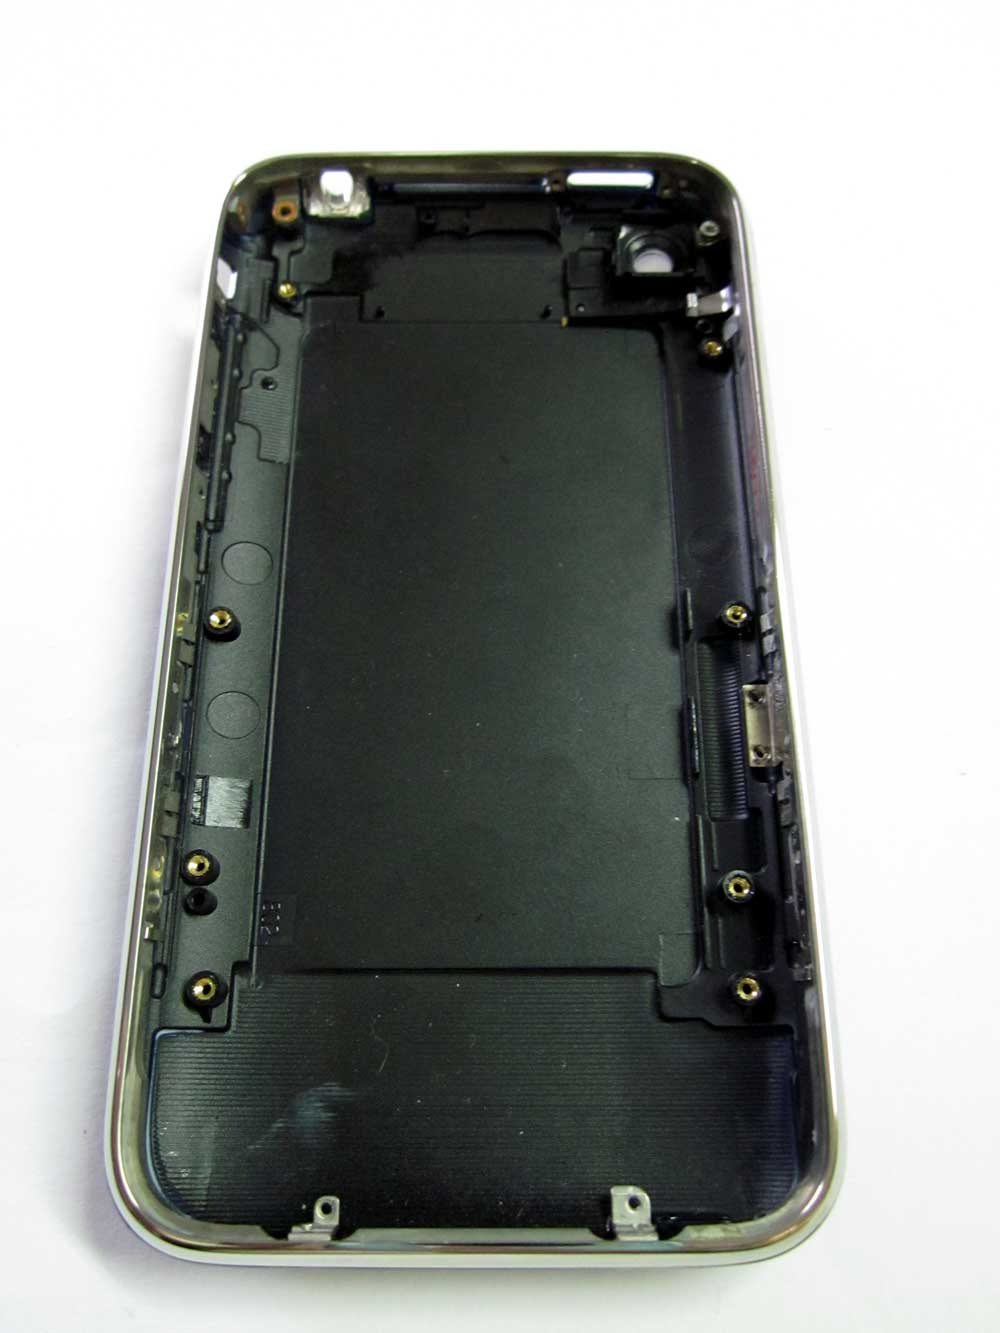 IPHONE 3GS BACK COVER & BEZEL